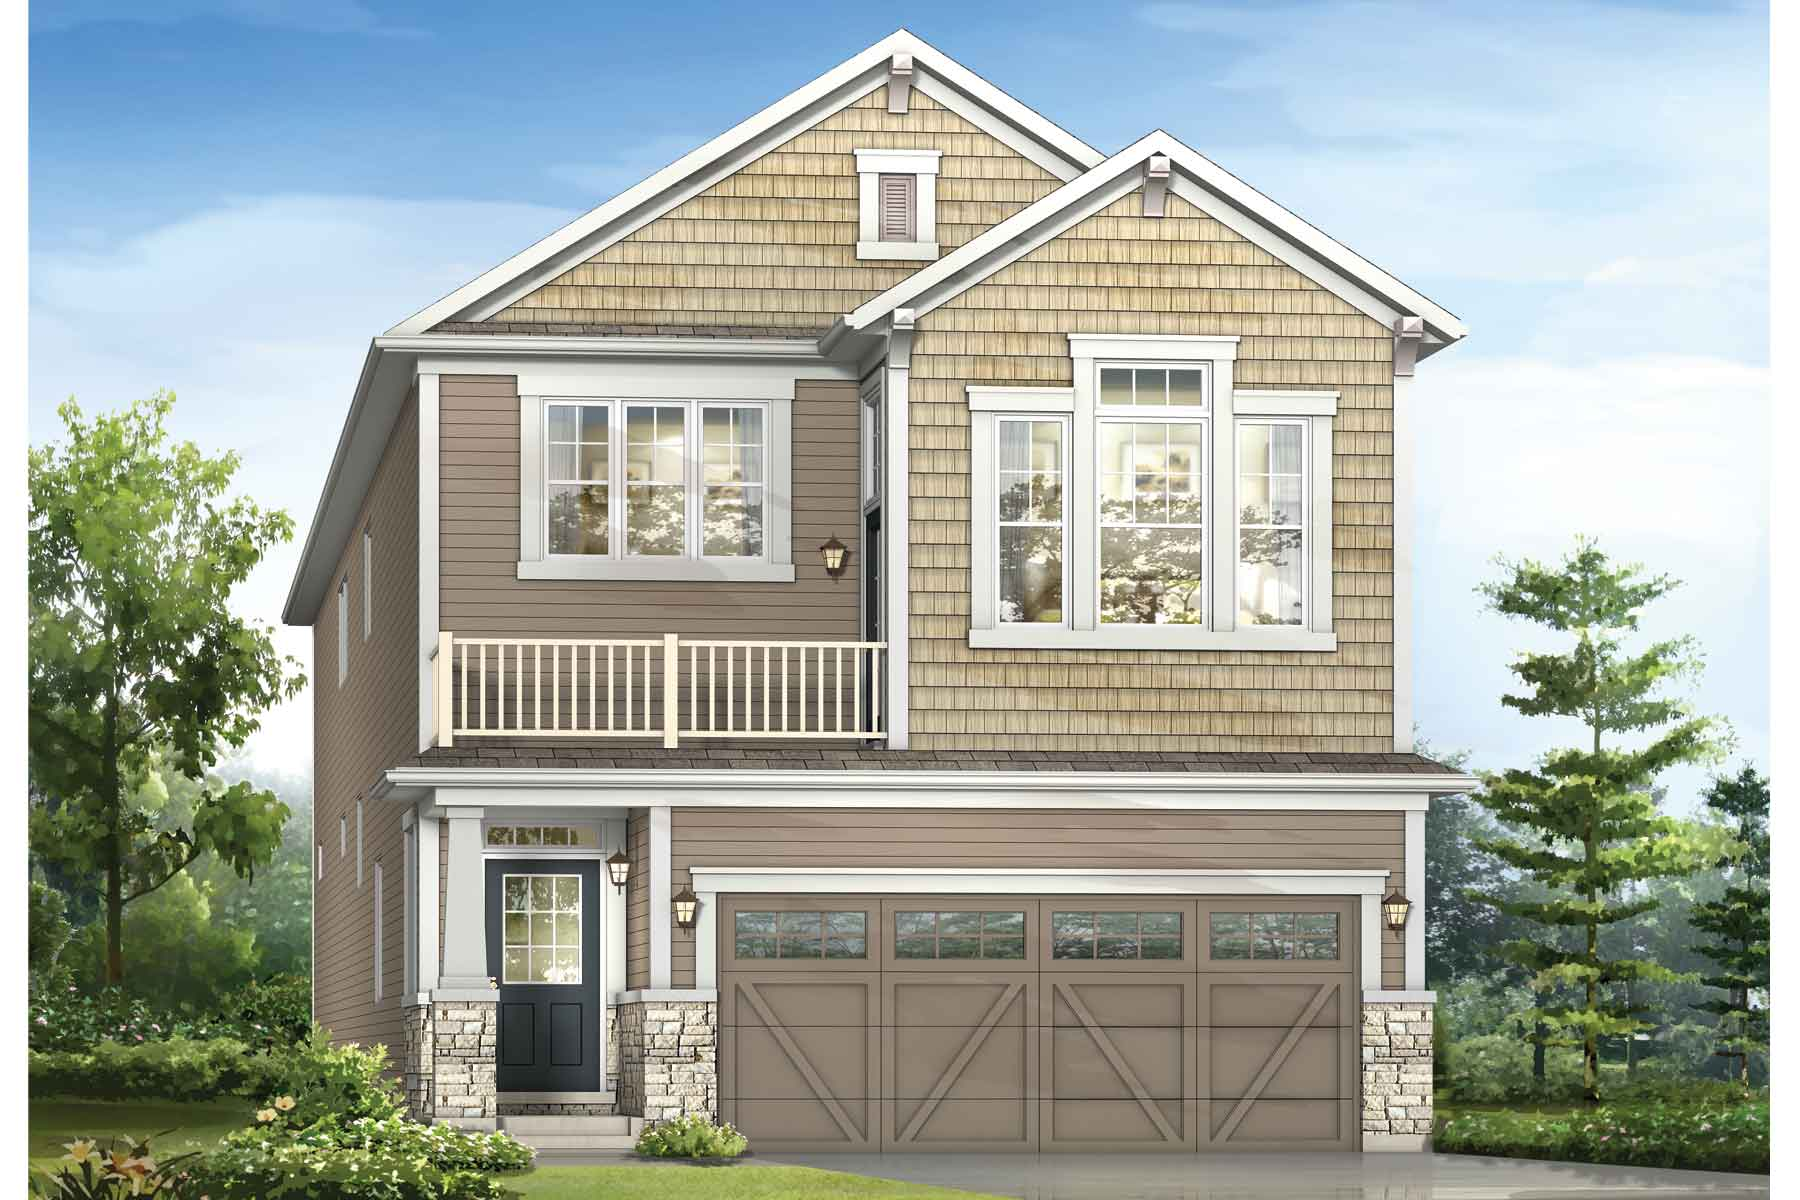 Orchid Plan elevationcraftsman_southwinds_orchid_main at Southwinds in Airdrie Alberta by Mattamy Homes